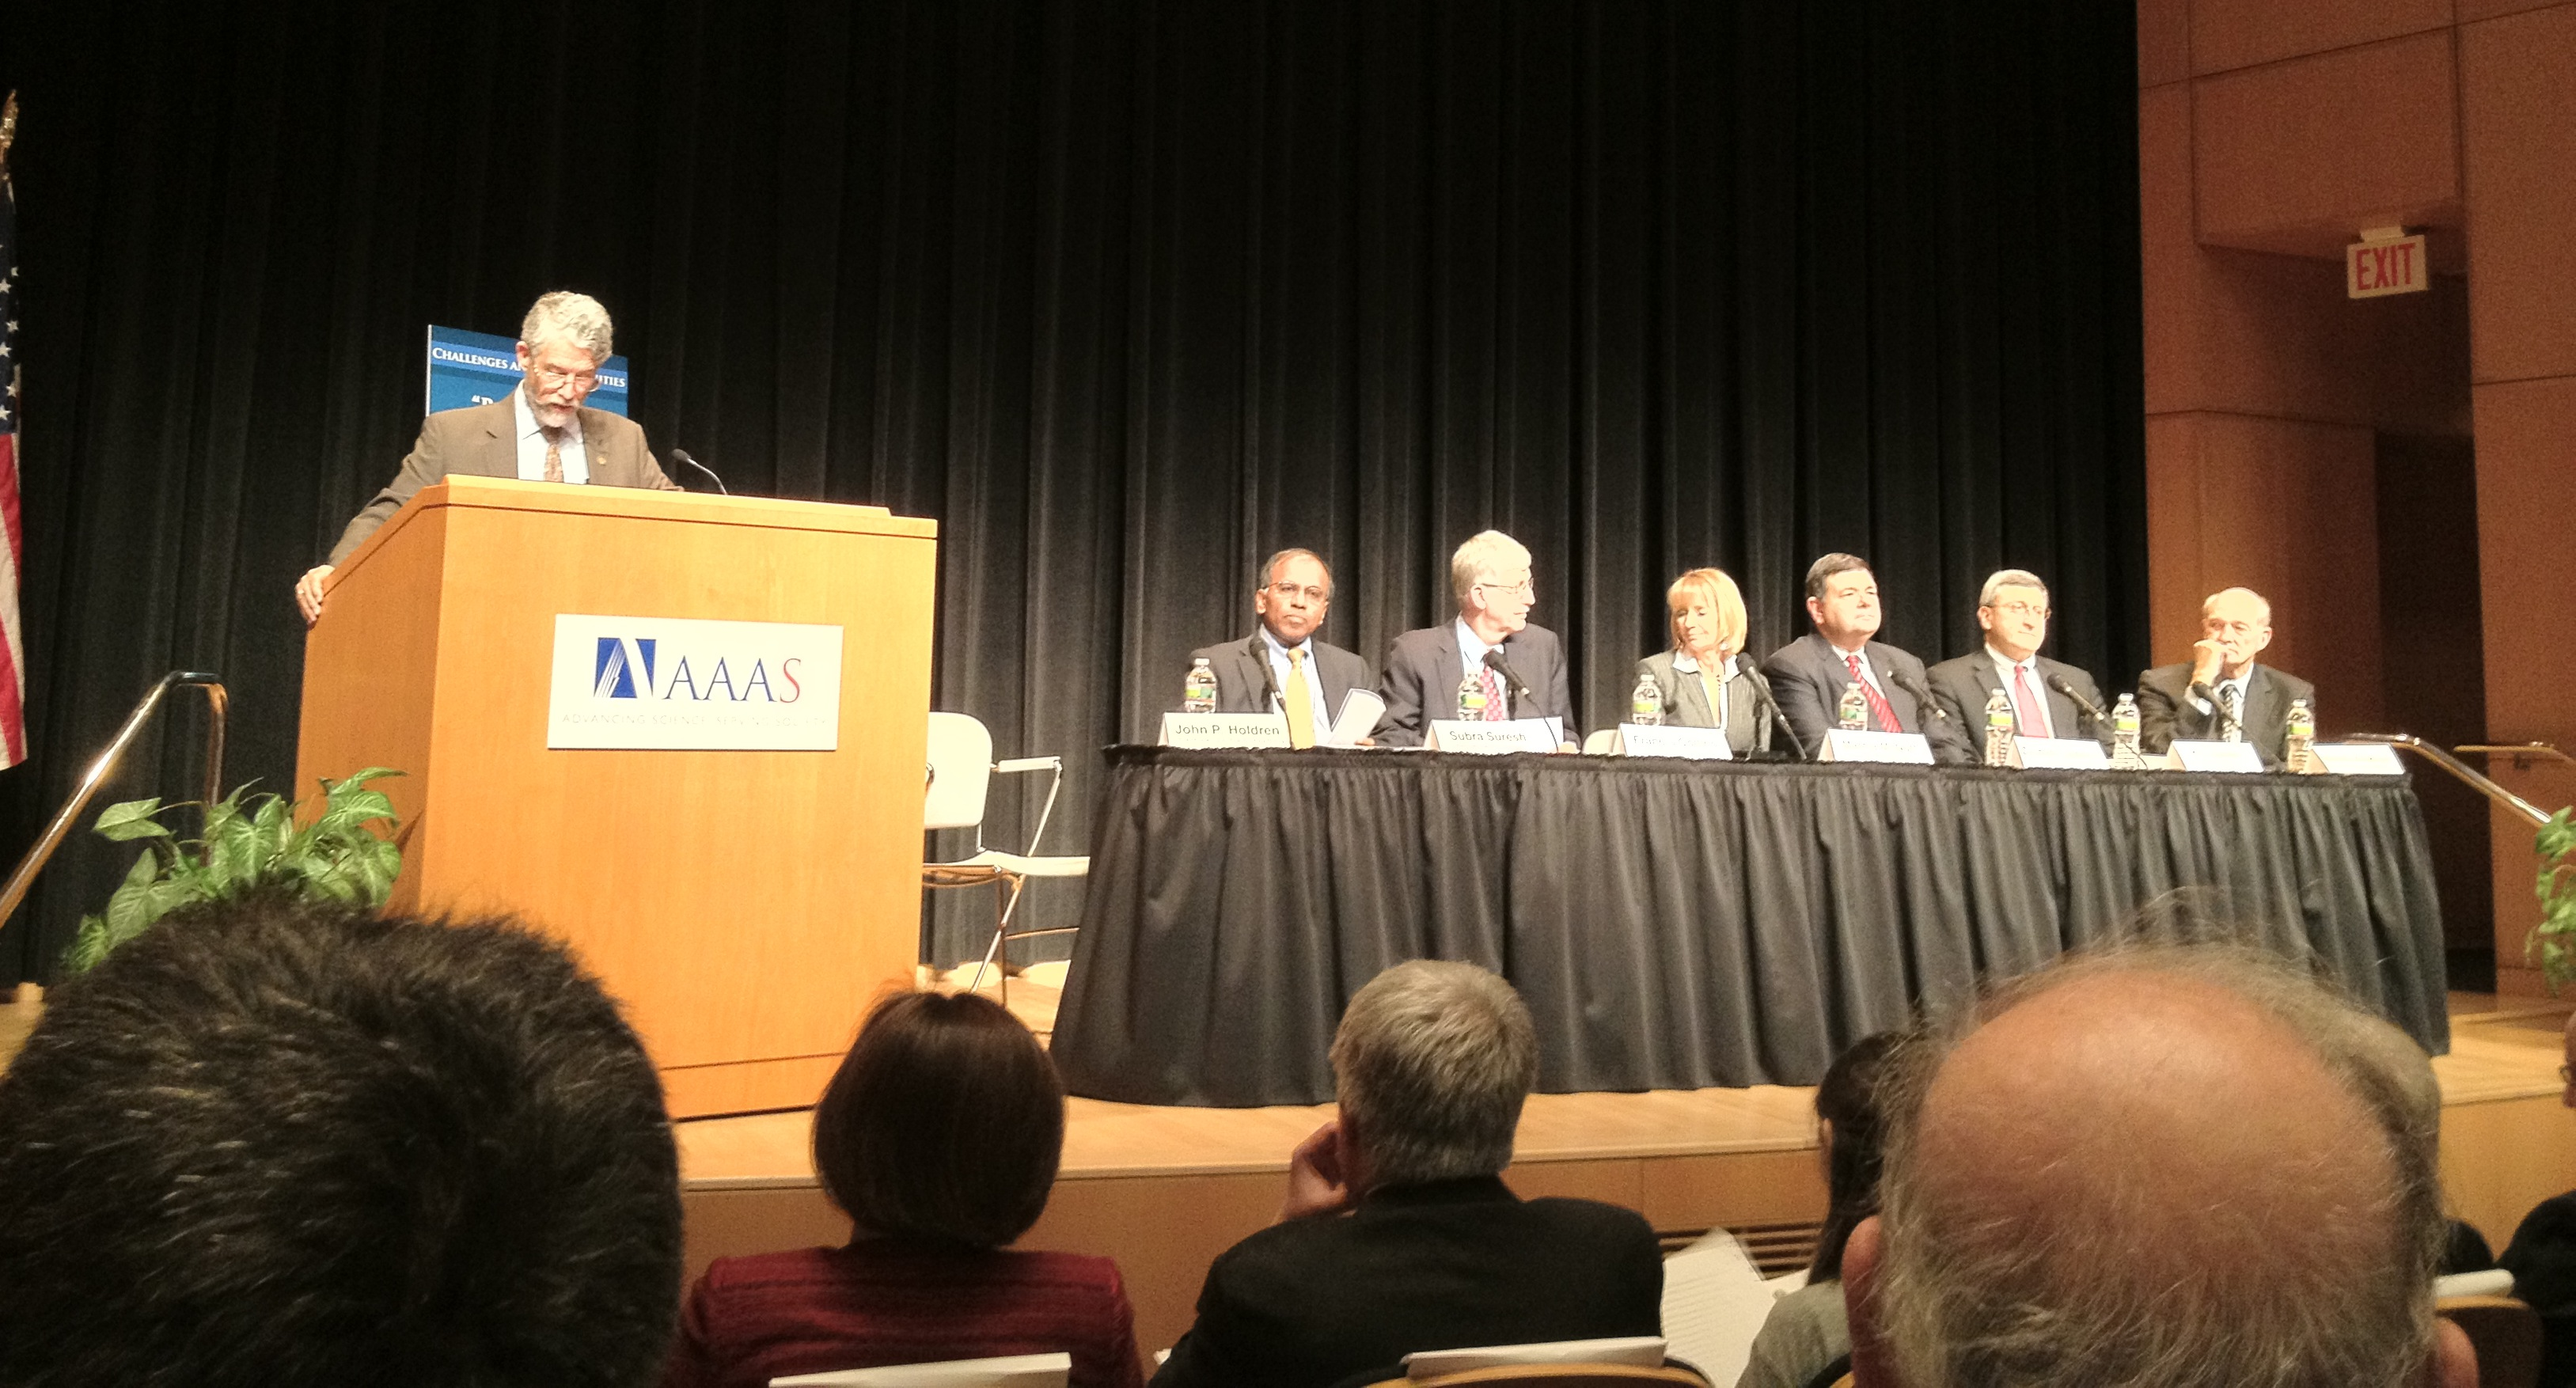 Government officials from the White House Office of Science and Technology Policy (OSTP) and six Federal agencies announce the Big Data R&D Initiative in the AAAS Auditorium in Washington, DC, on Thursday, March 29.